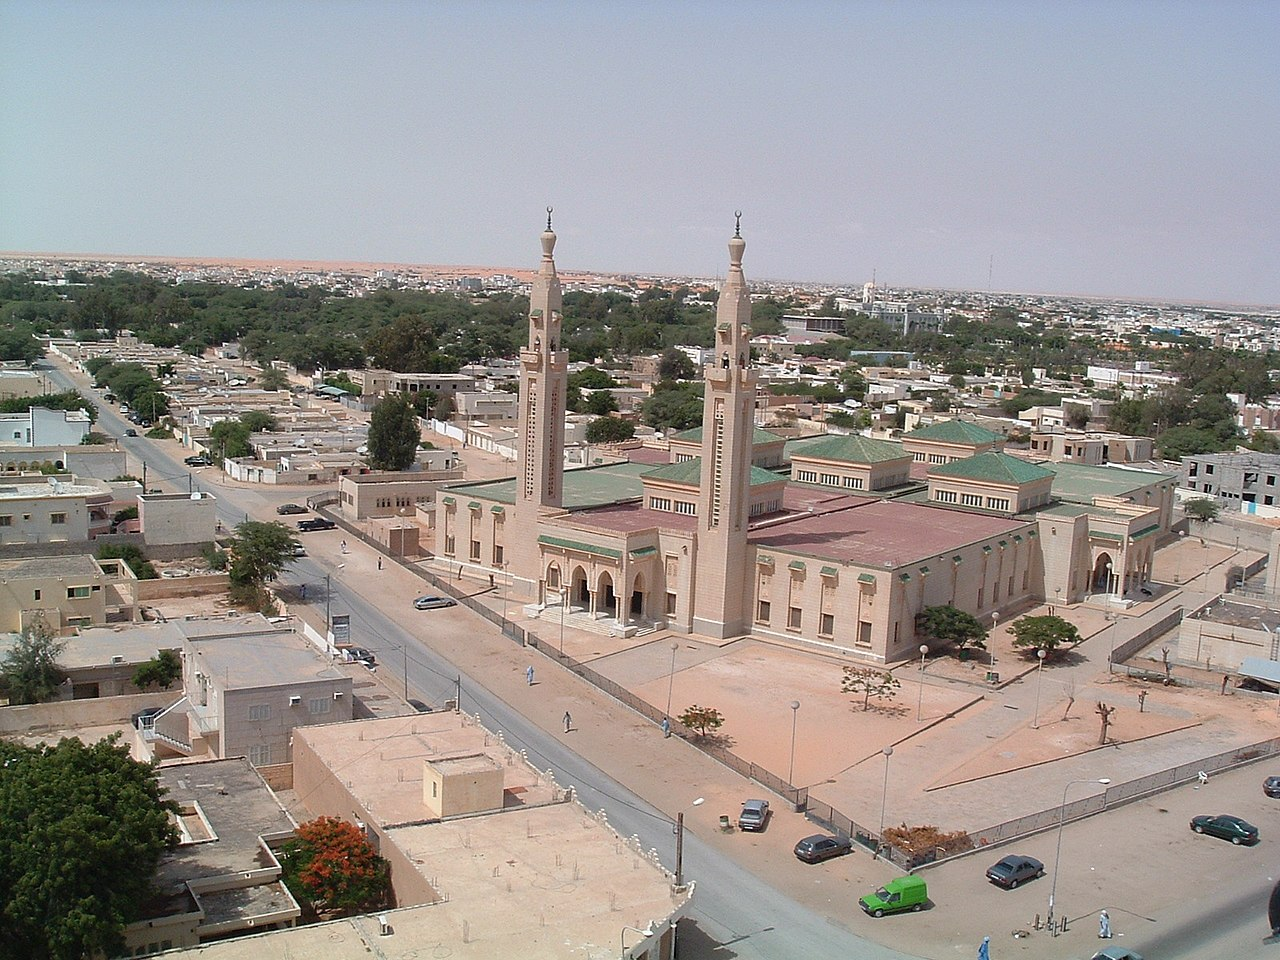 The Grand Mosque in Nouakchott